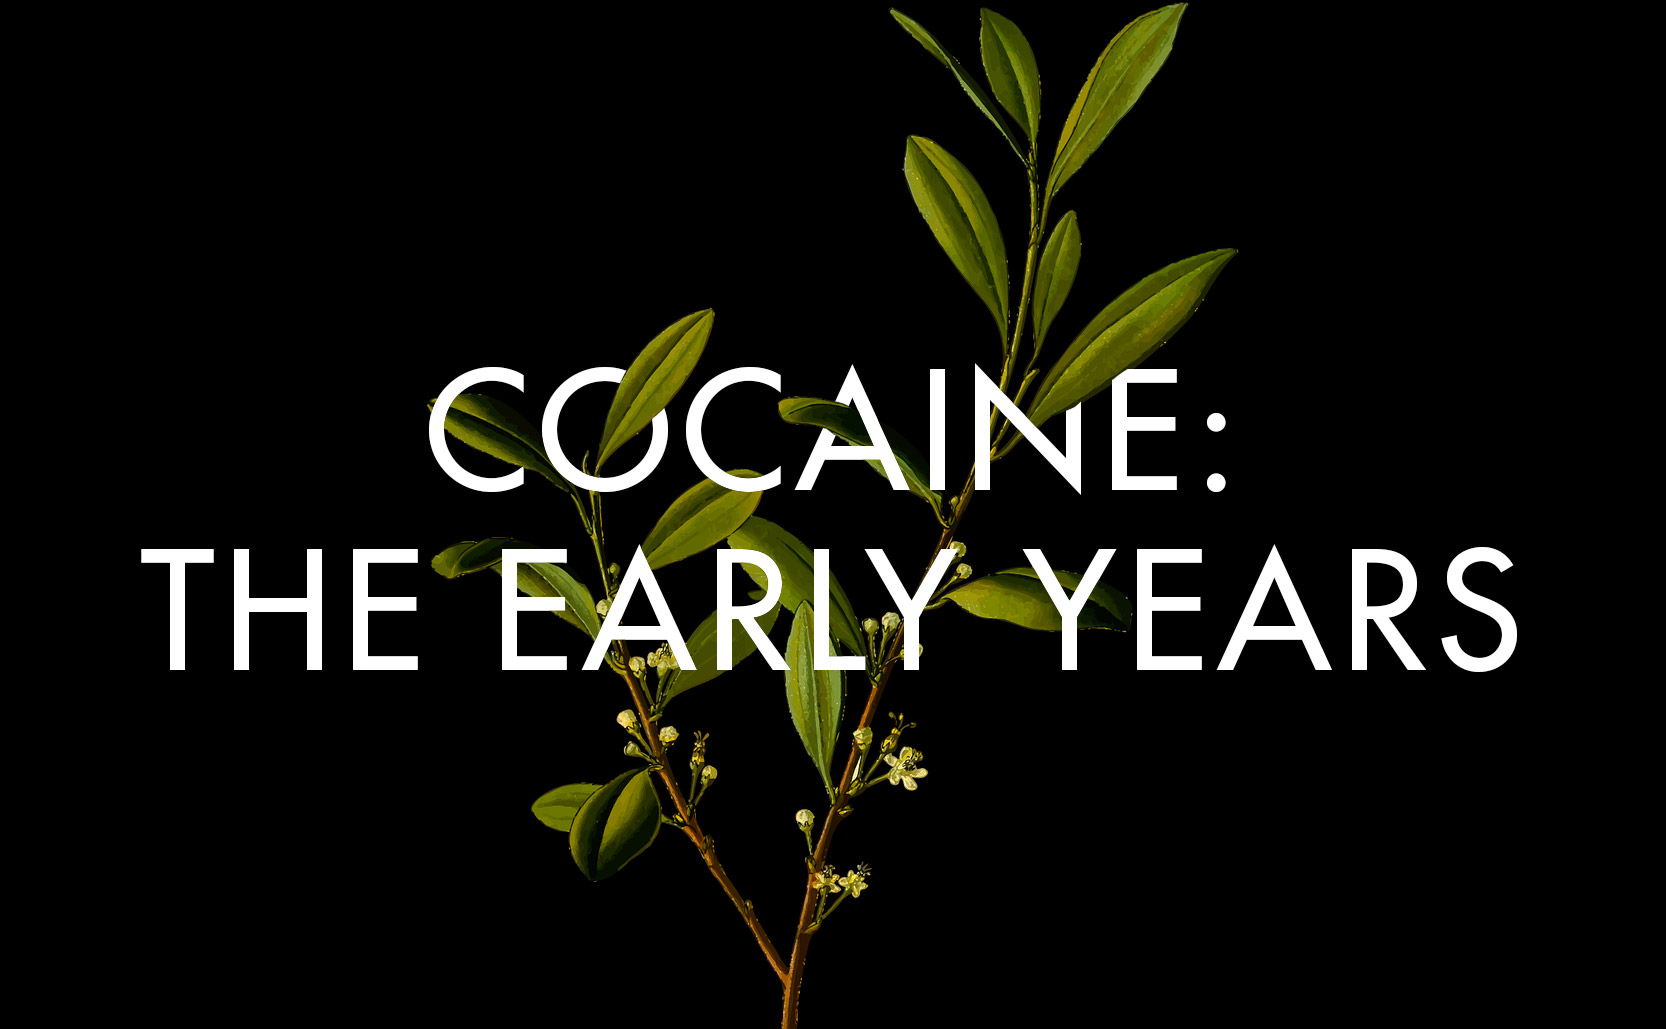 Cocaine: the Early Years